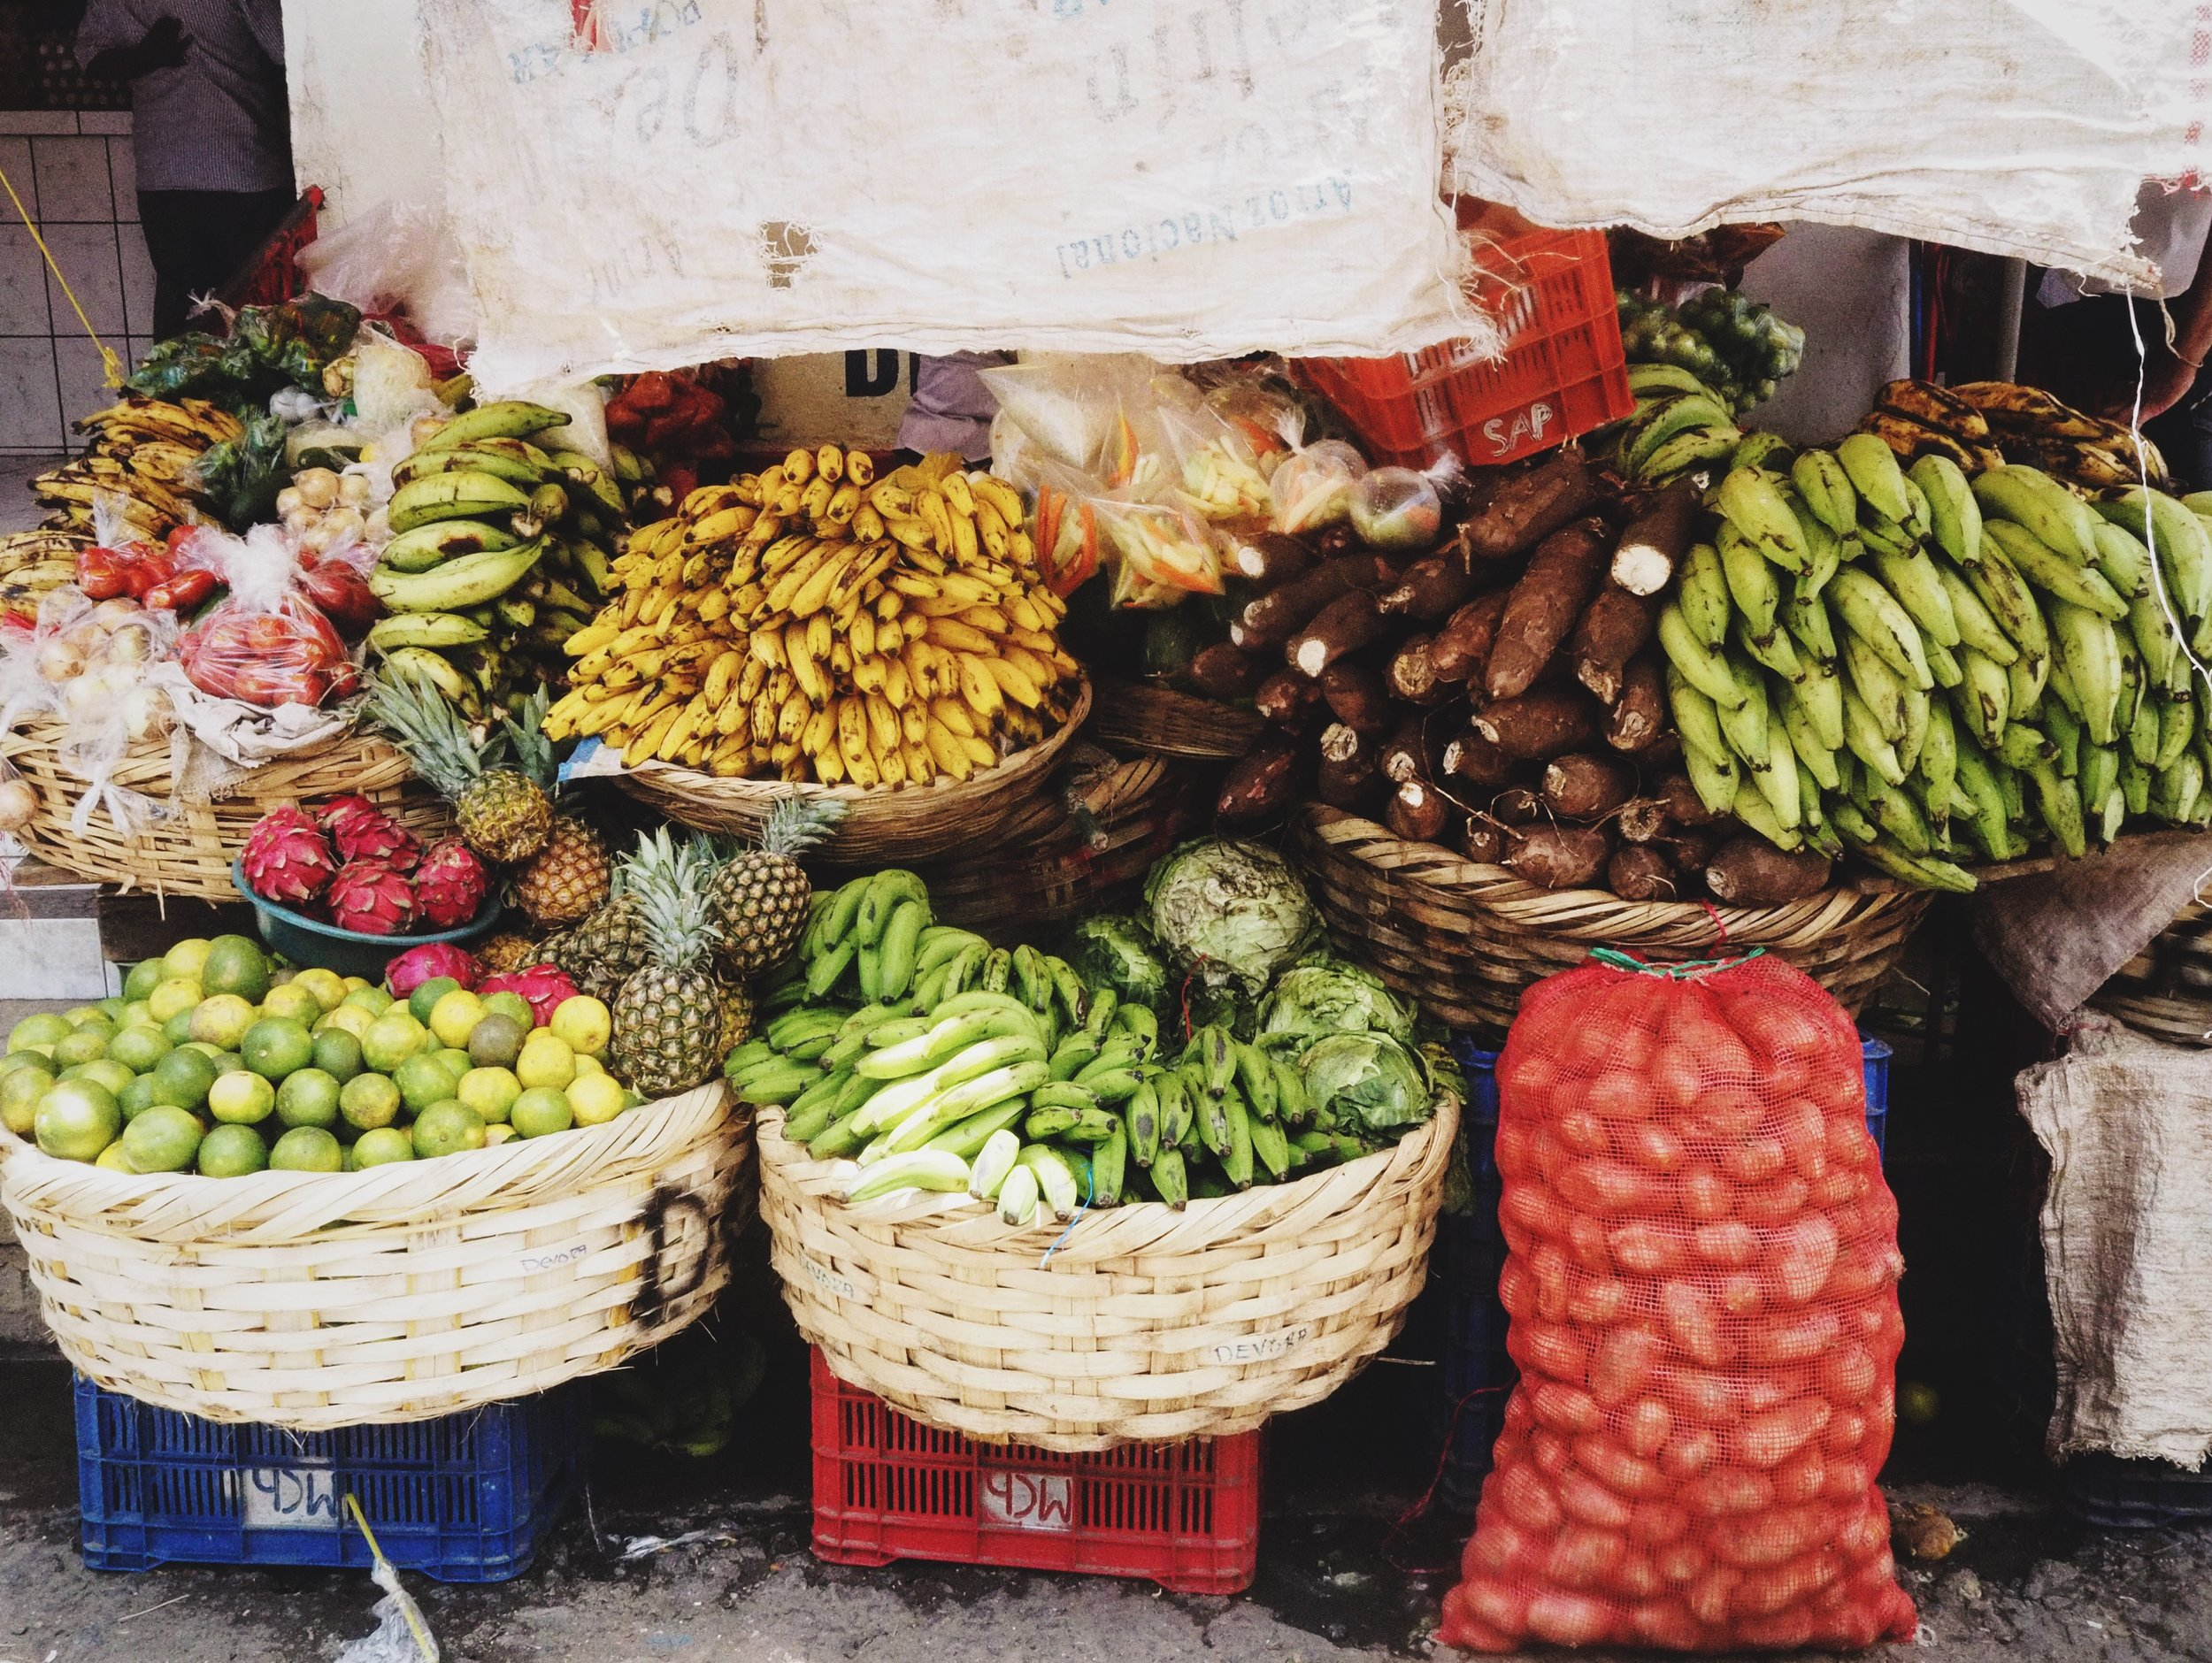 The market was overflowing with great produce and spices.